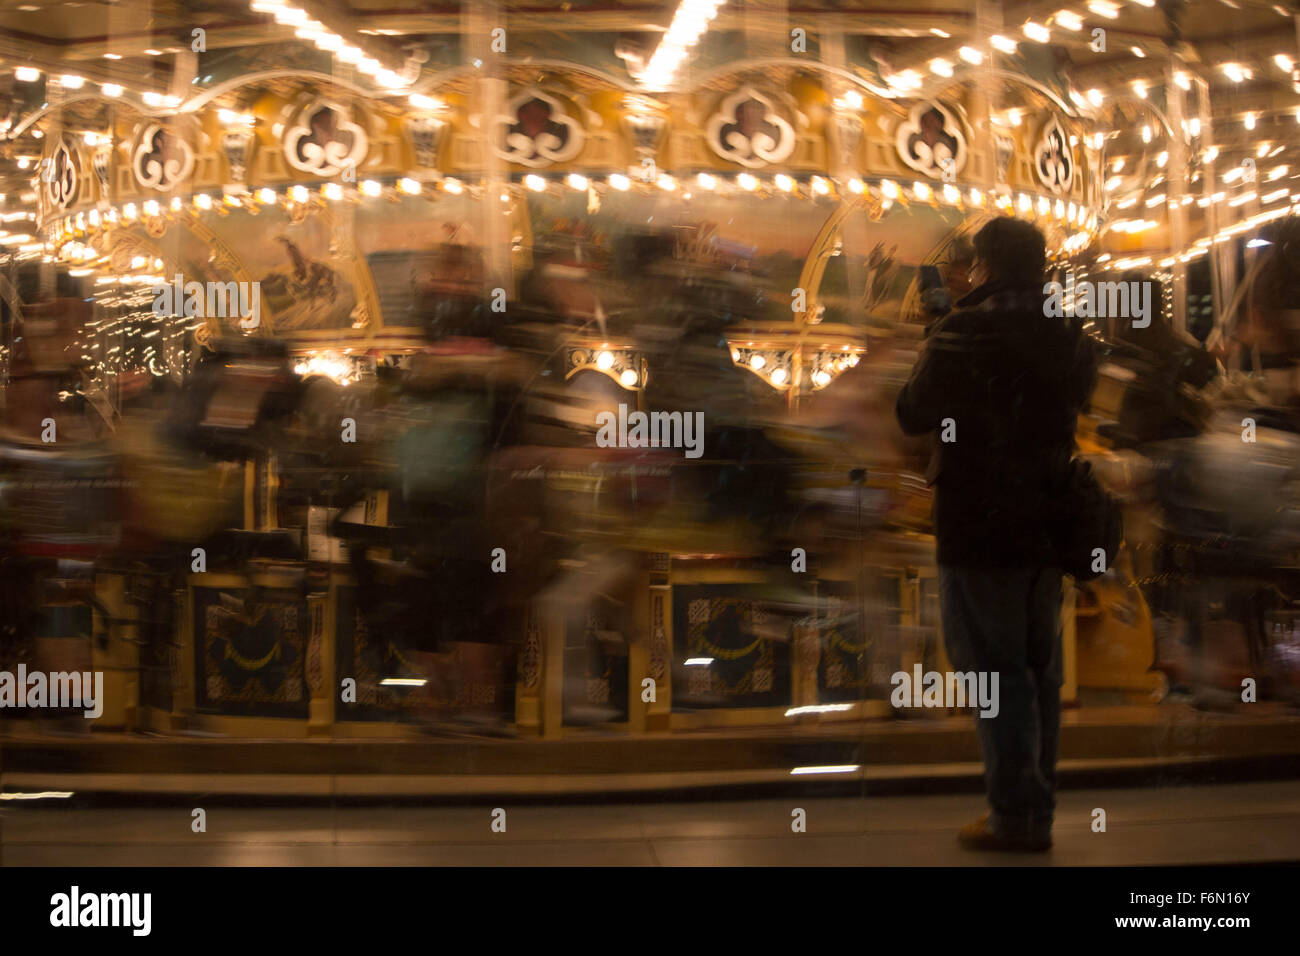 Jane's Carousel Brooklyn NY- A detailed view of some of the rides on the merry-go-round at Jane's Carousel - Stock Image